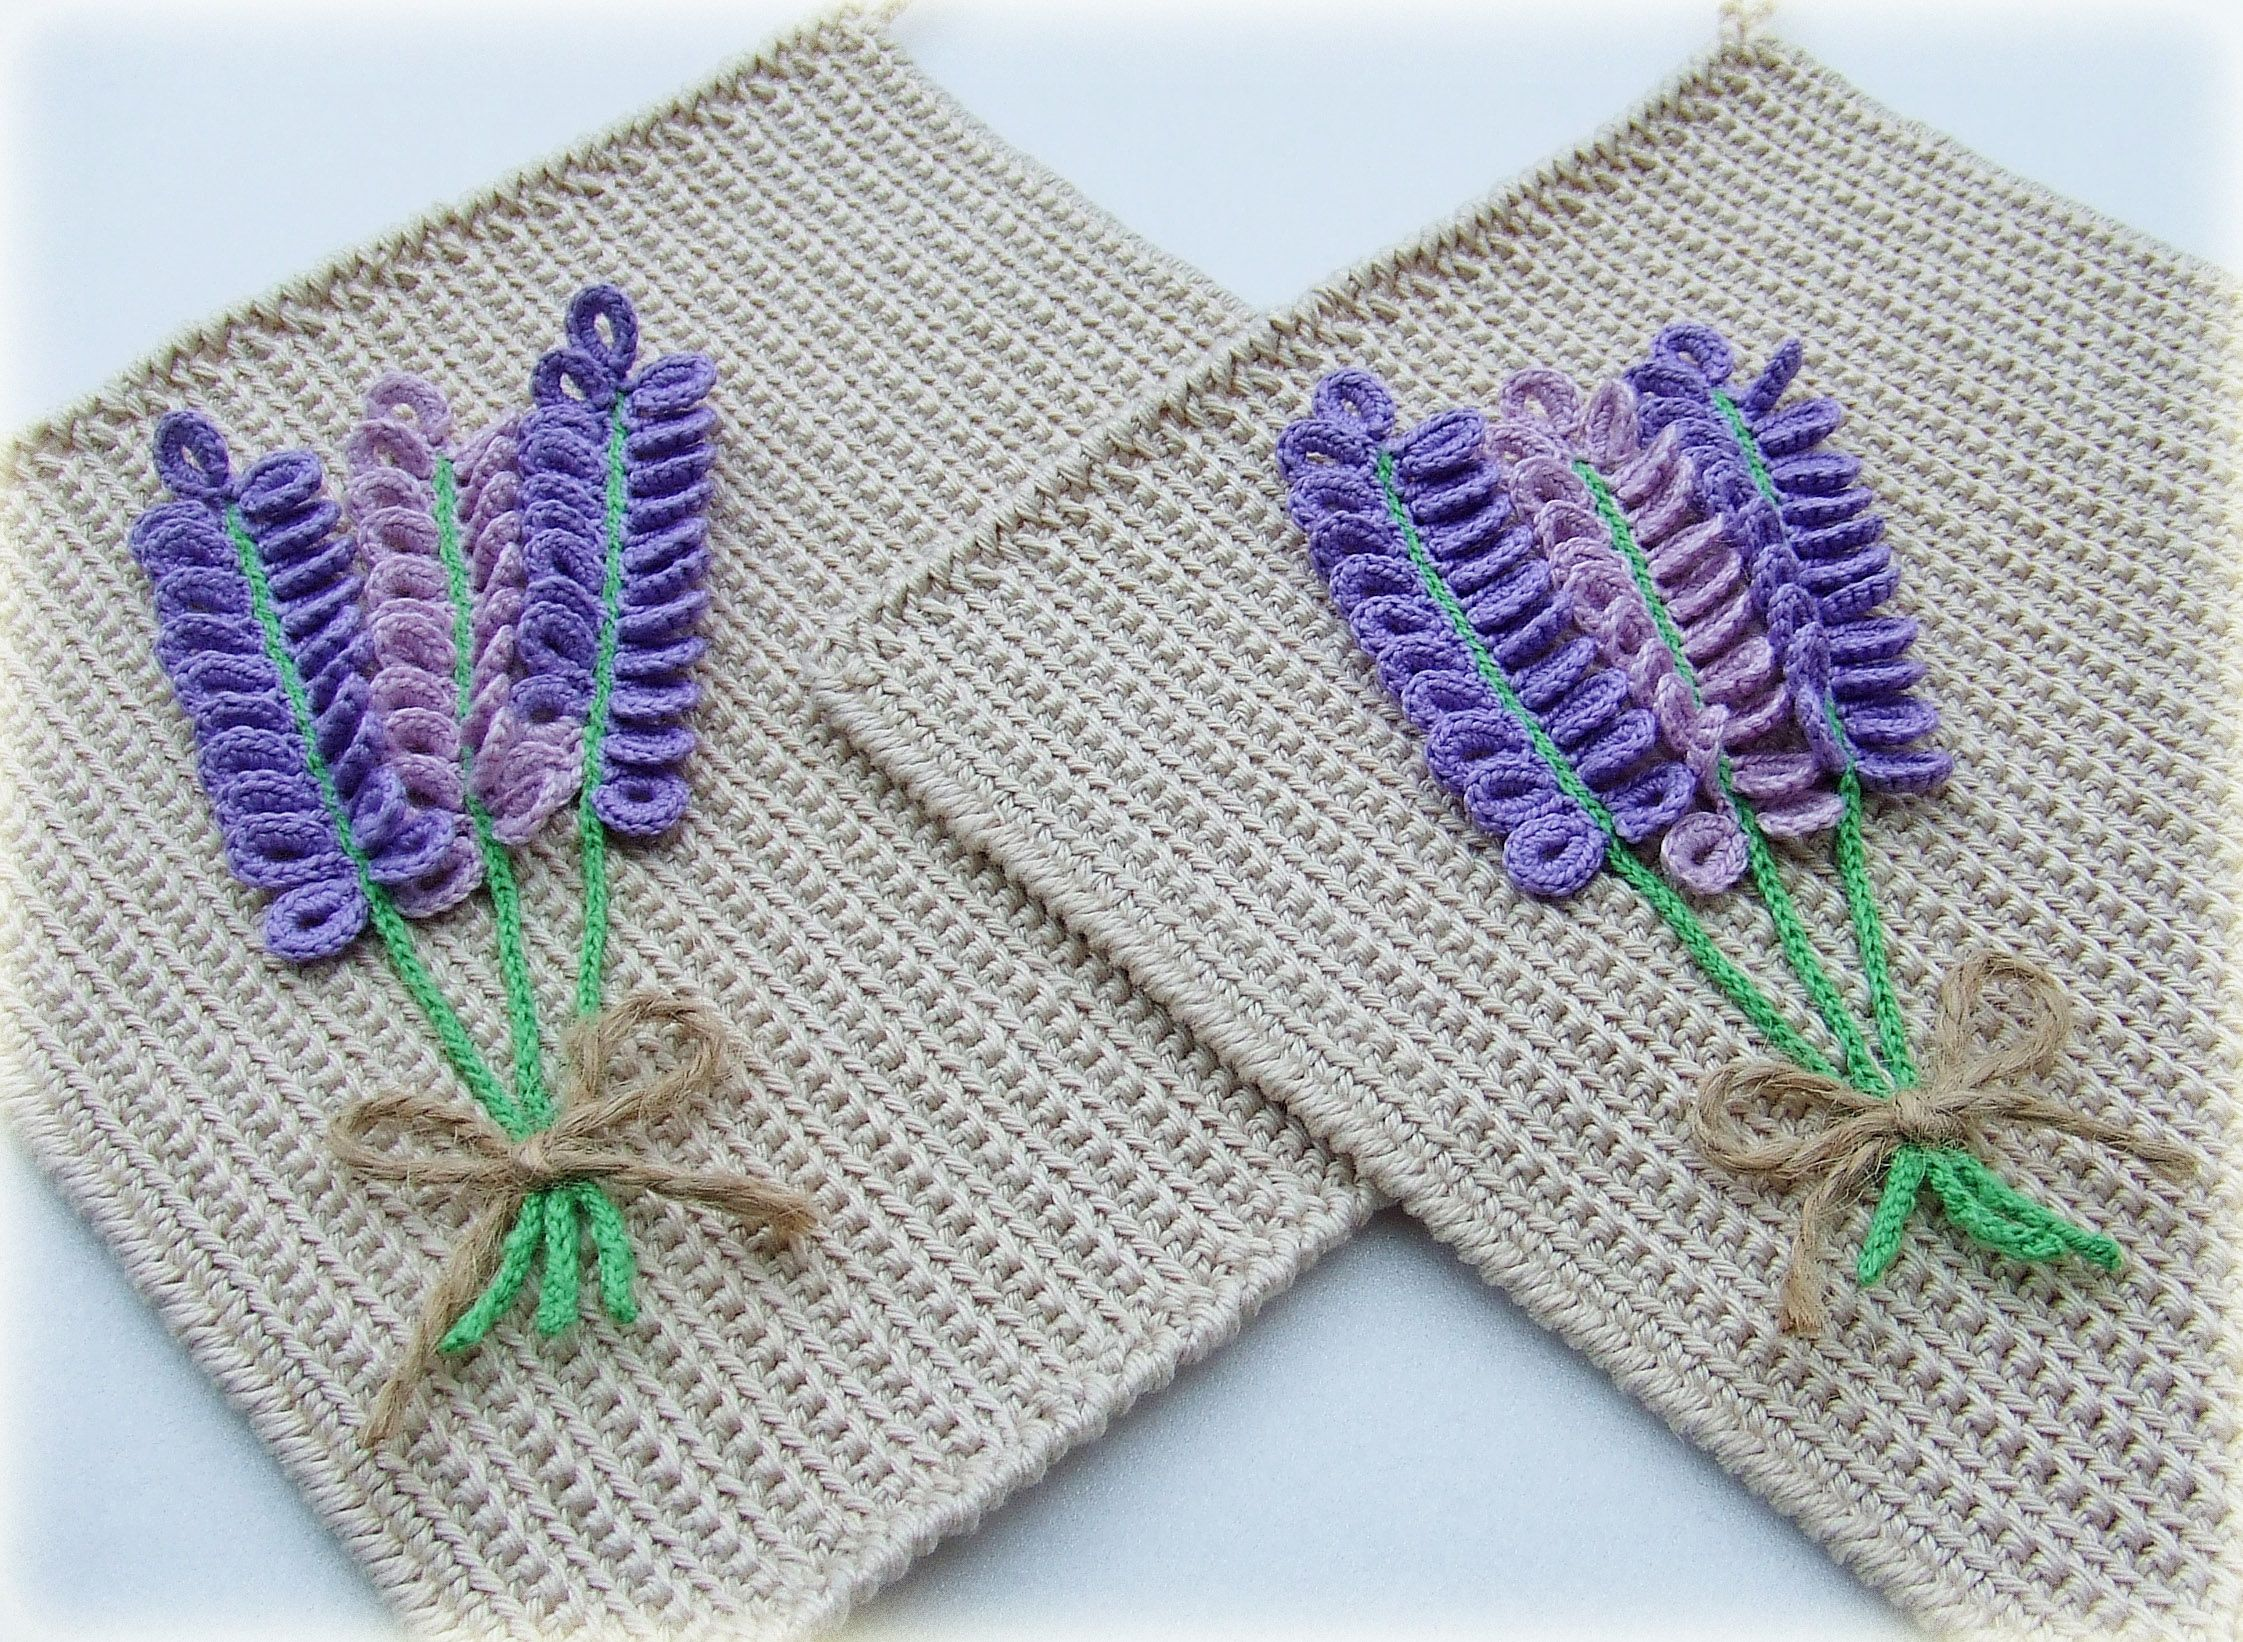 knitted lavender potholder